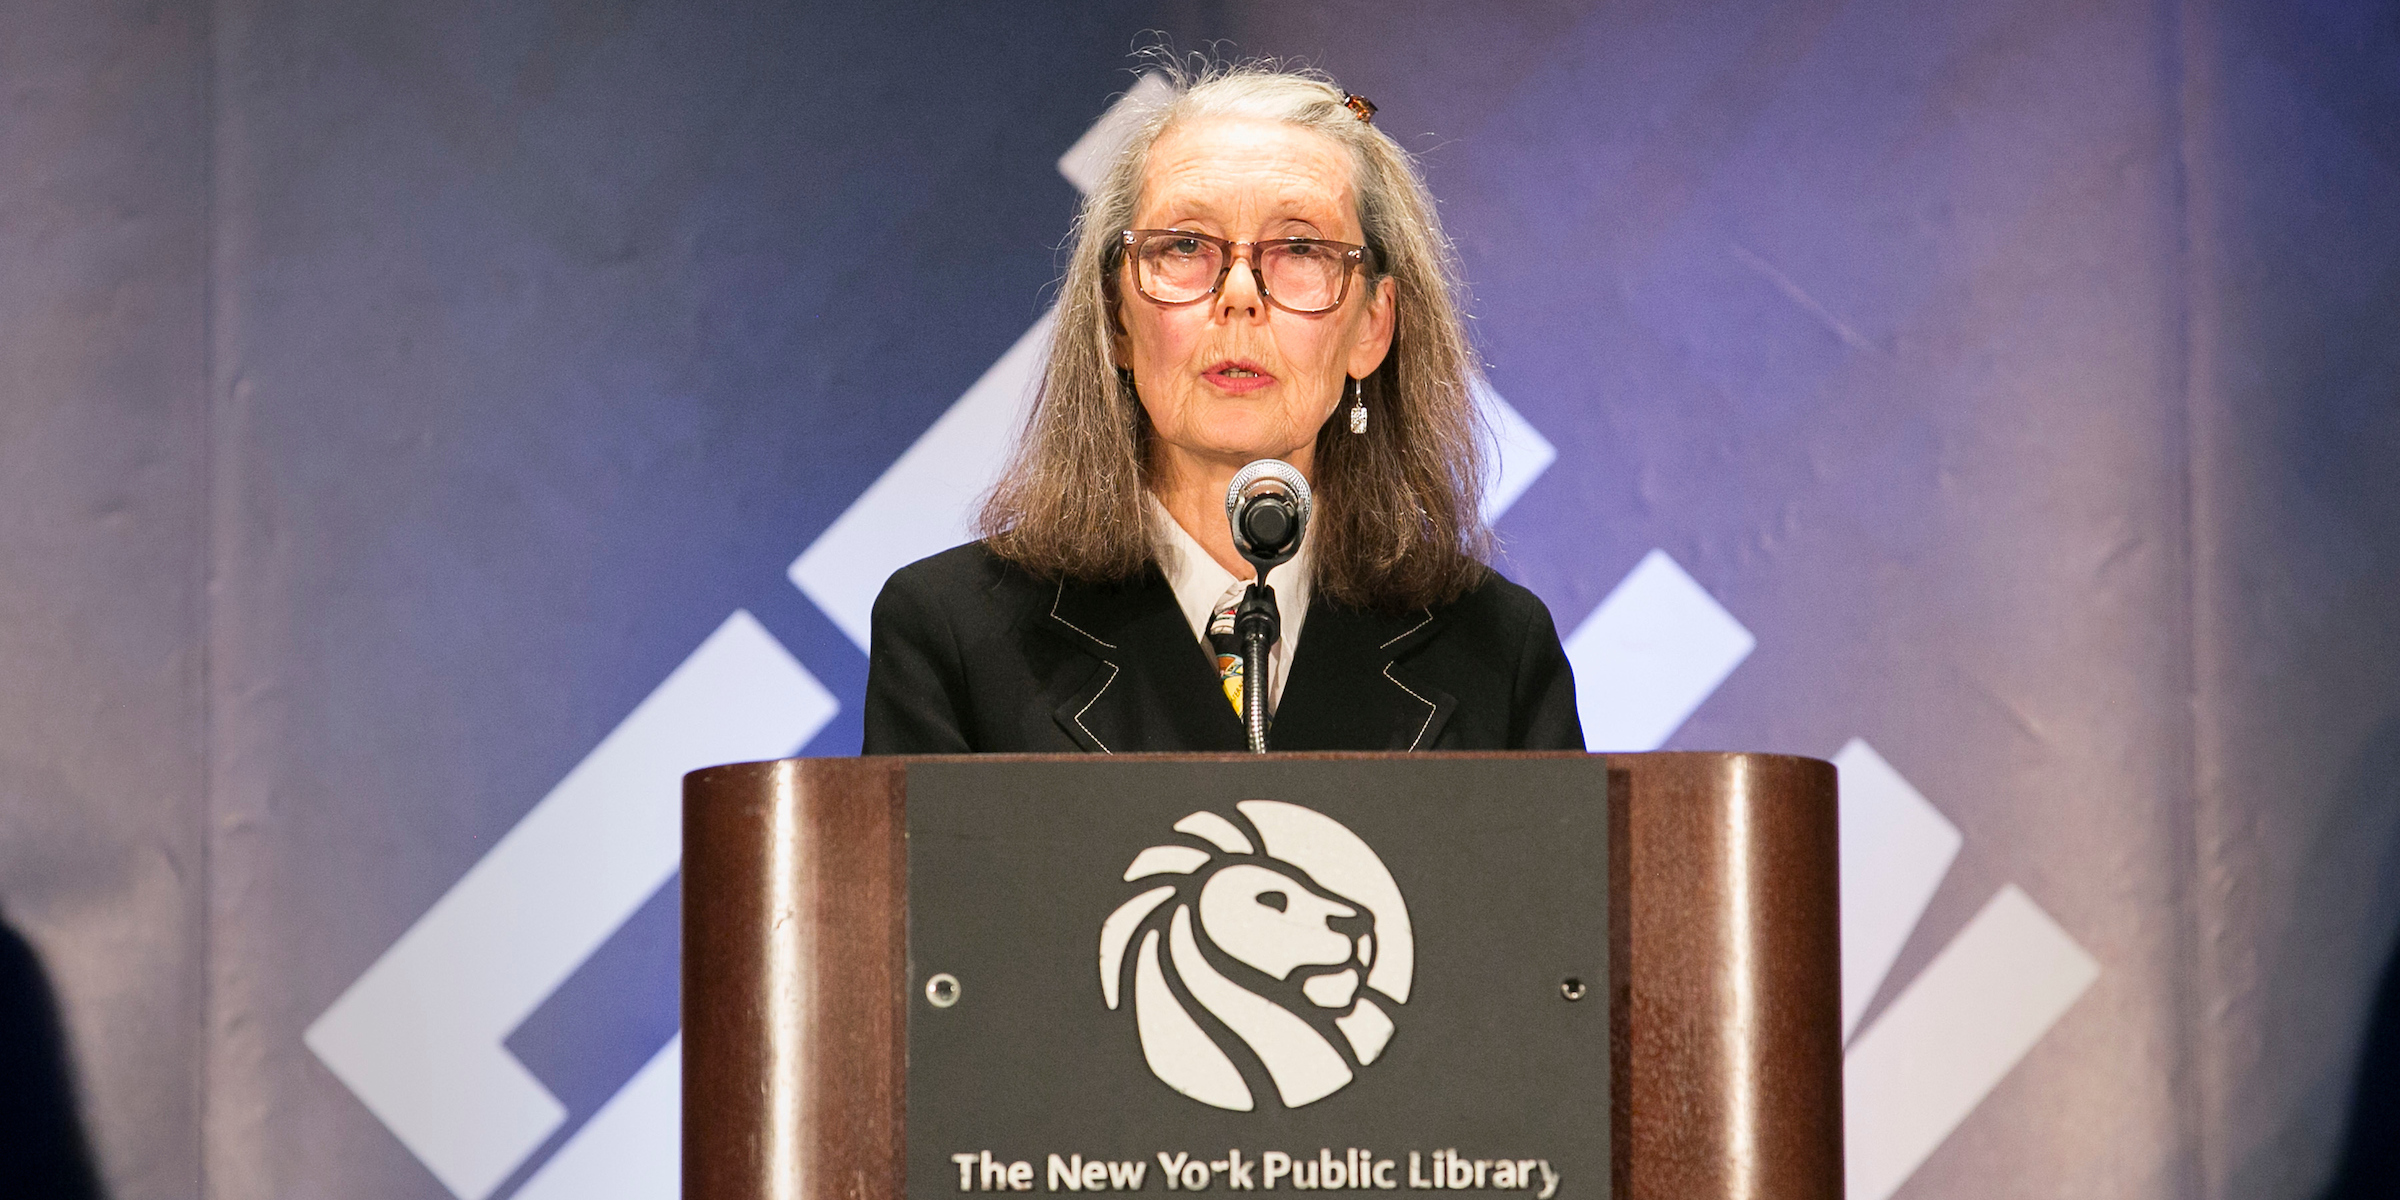 Anne Carson at the New York Public Library on December 7, 2018. Photo: Sarah Stacke / New York Public Library.